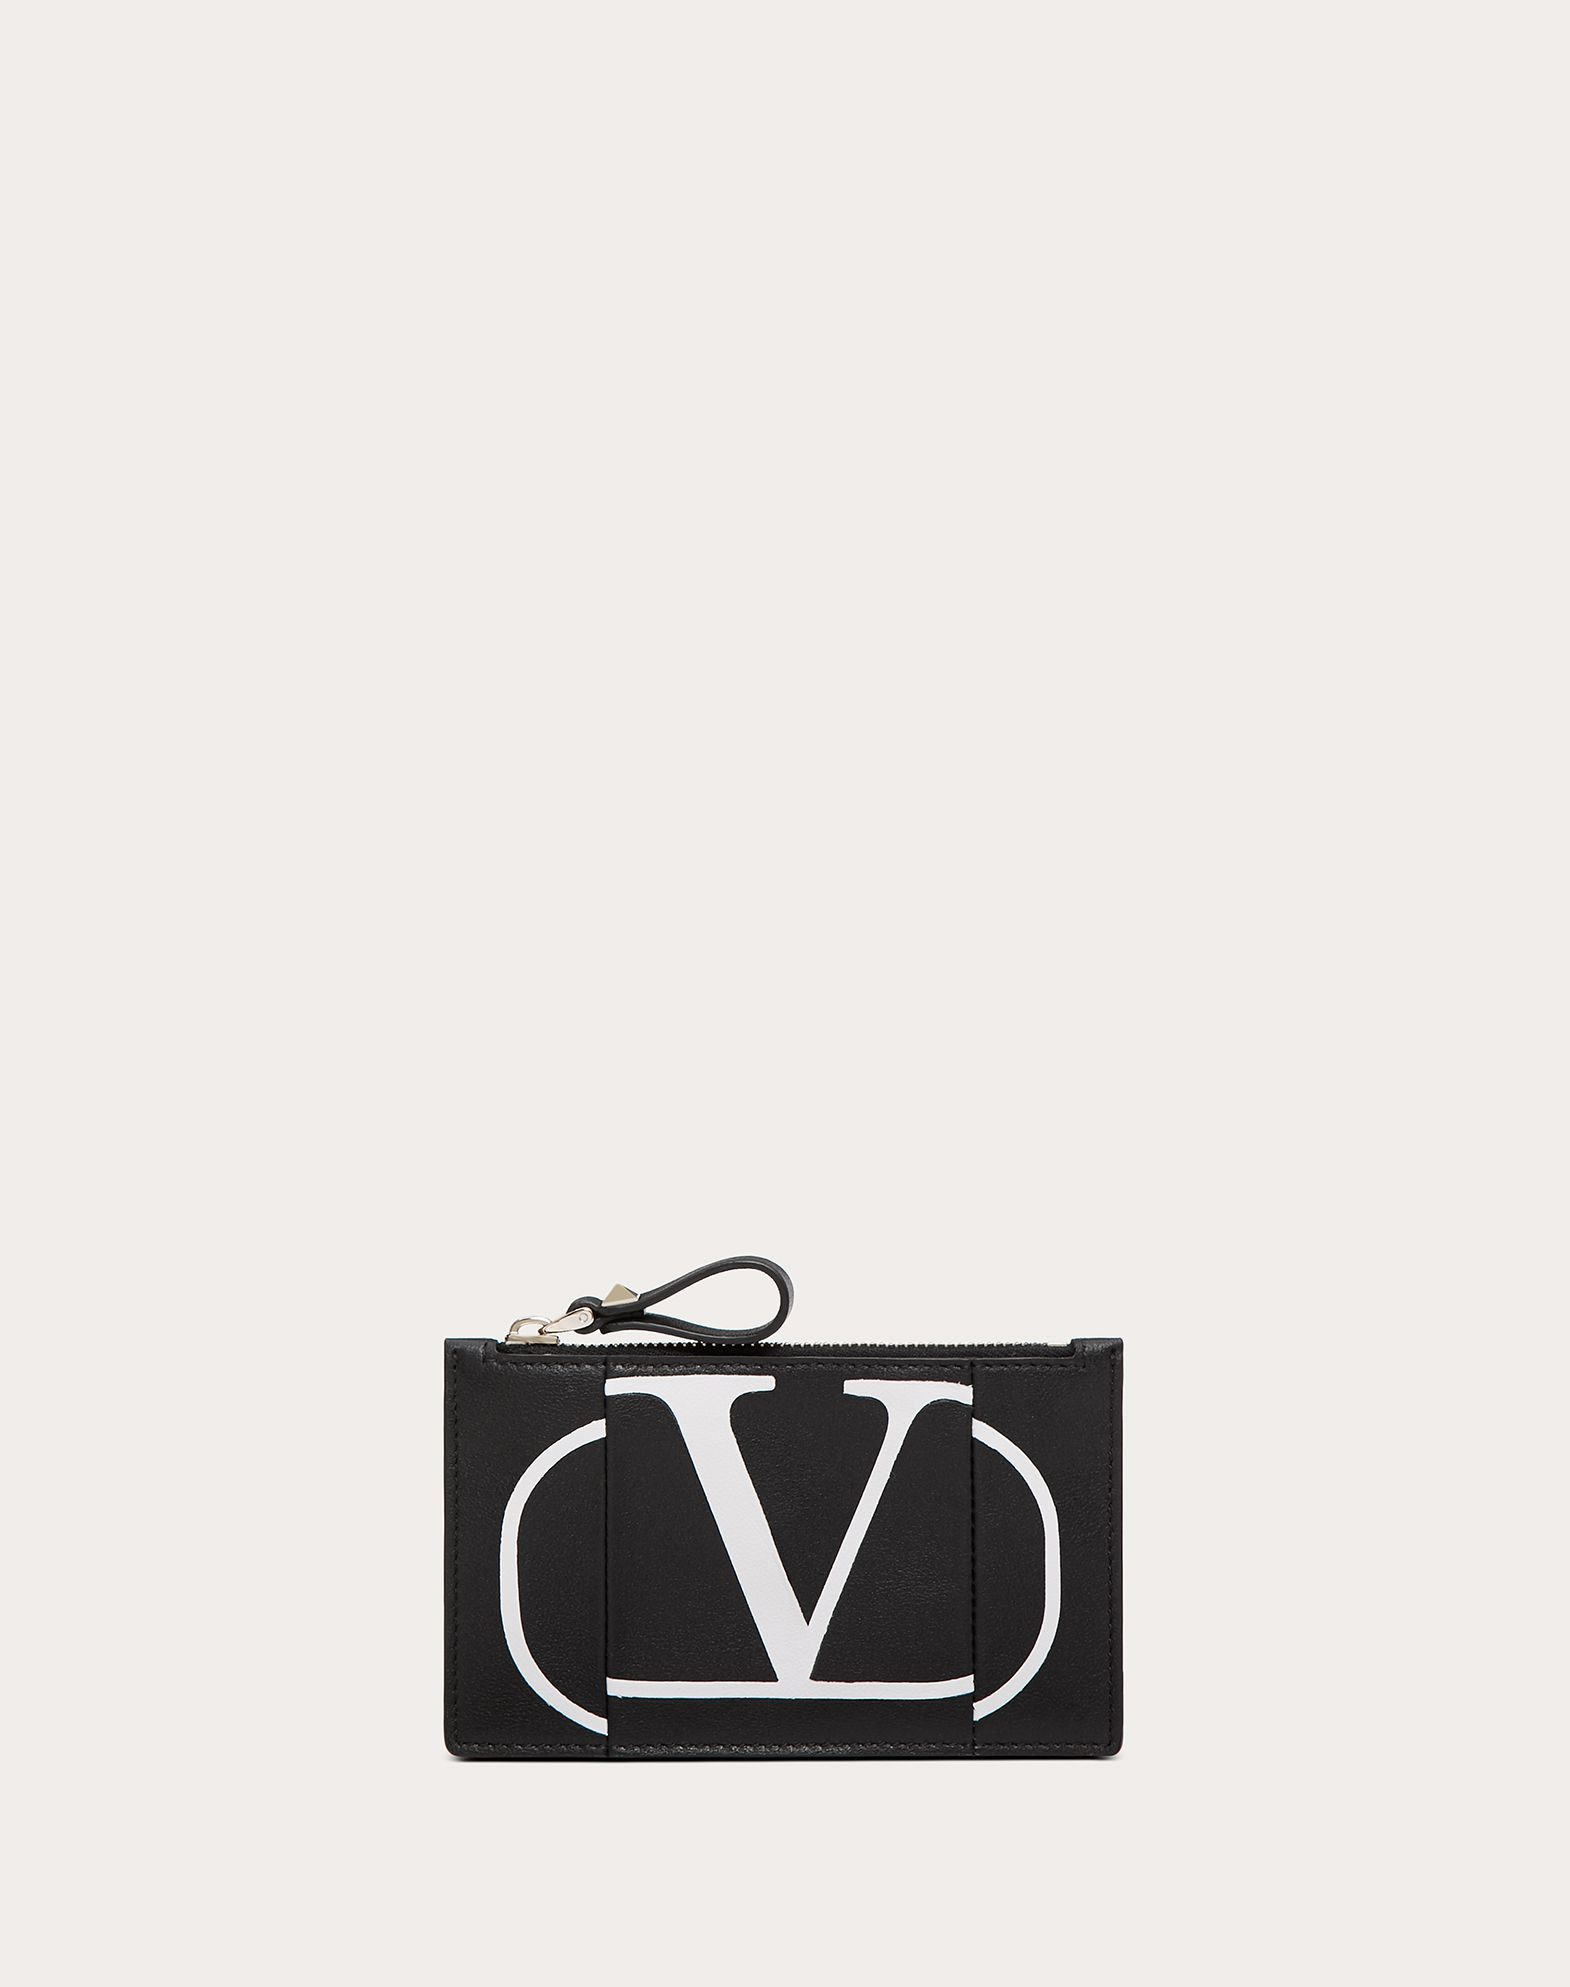 VLOGO Inlay Coin Purse and Cardholder